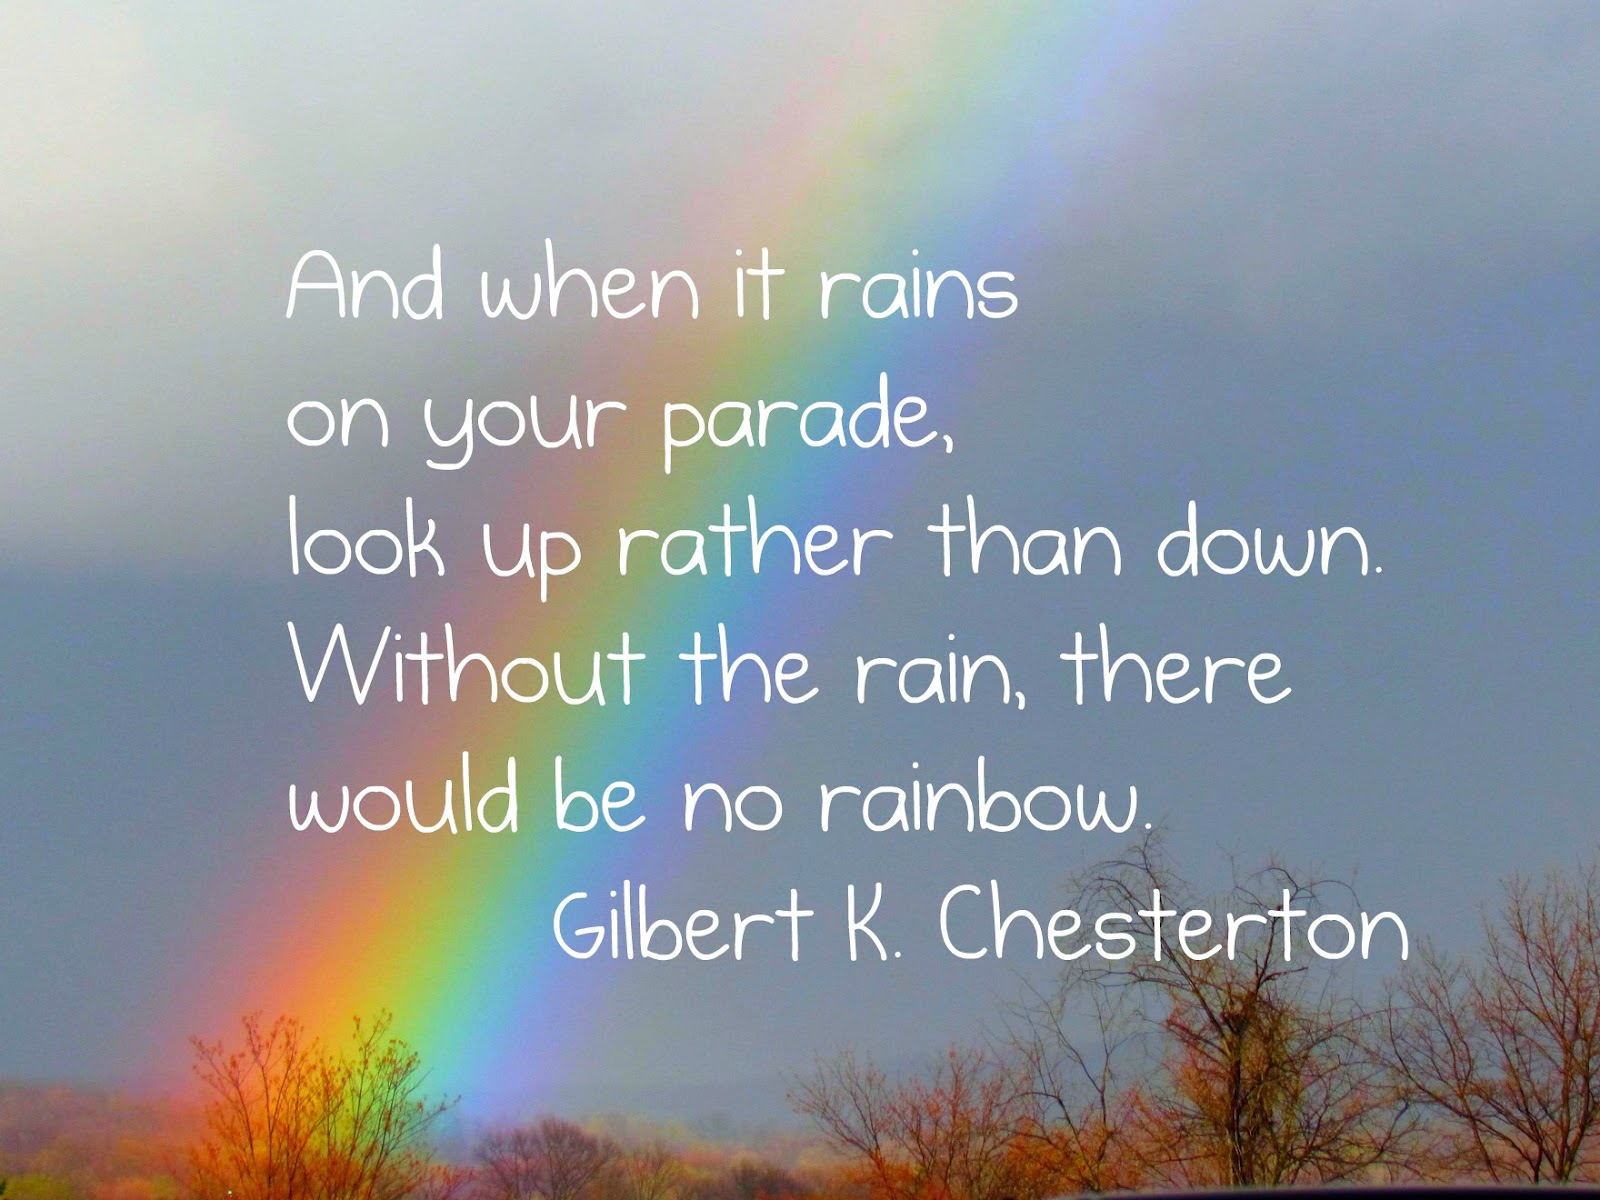 Rainbow At The End Of The Storm Quotes